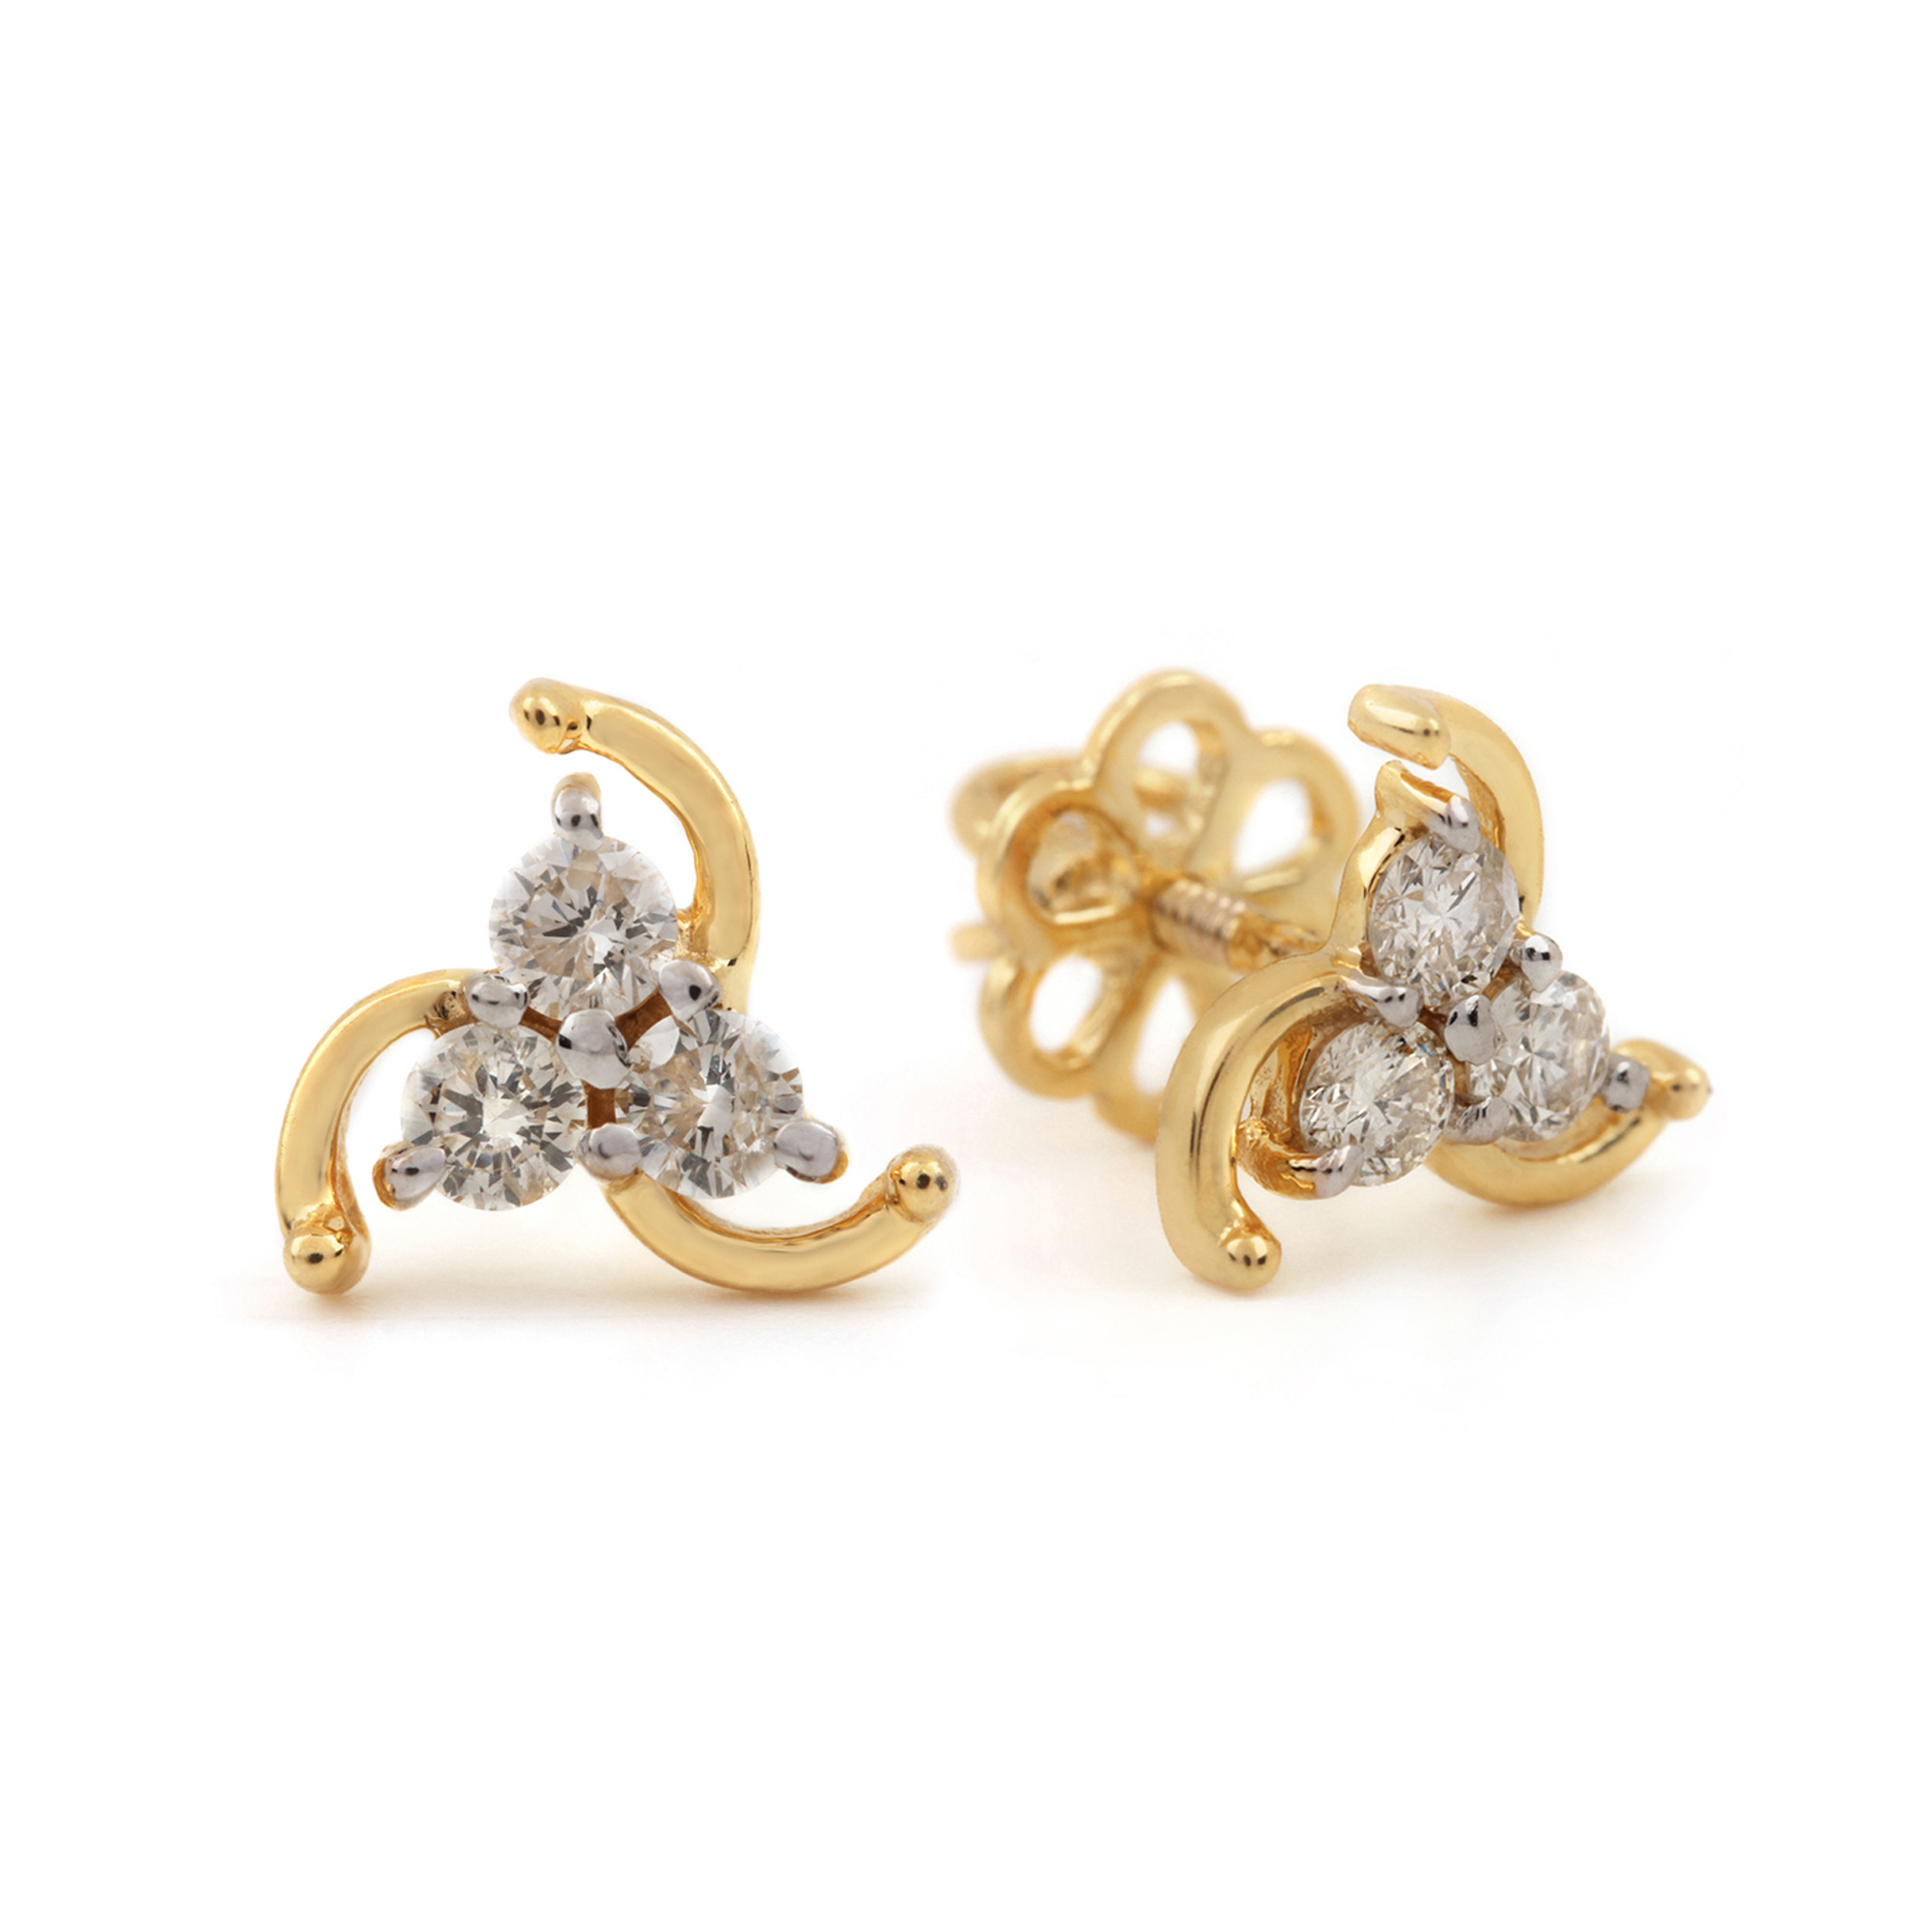 Solid 14k Yellow Gold Natural Diamond Earrings